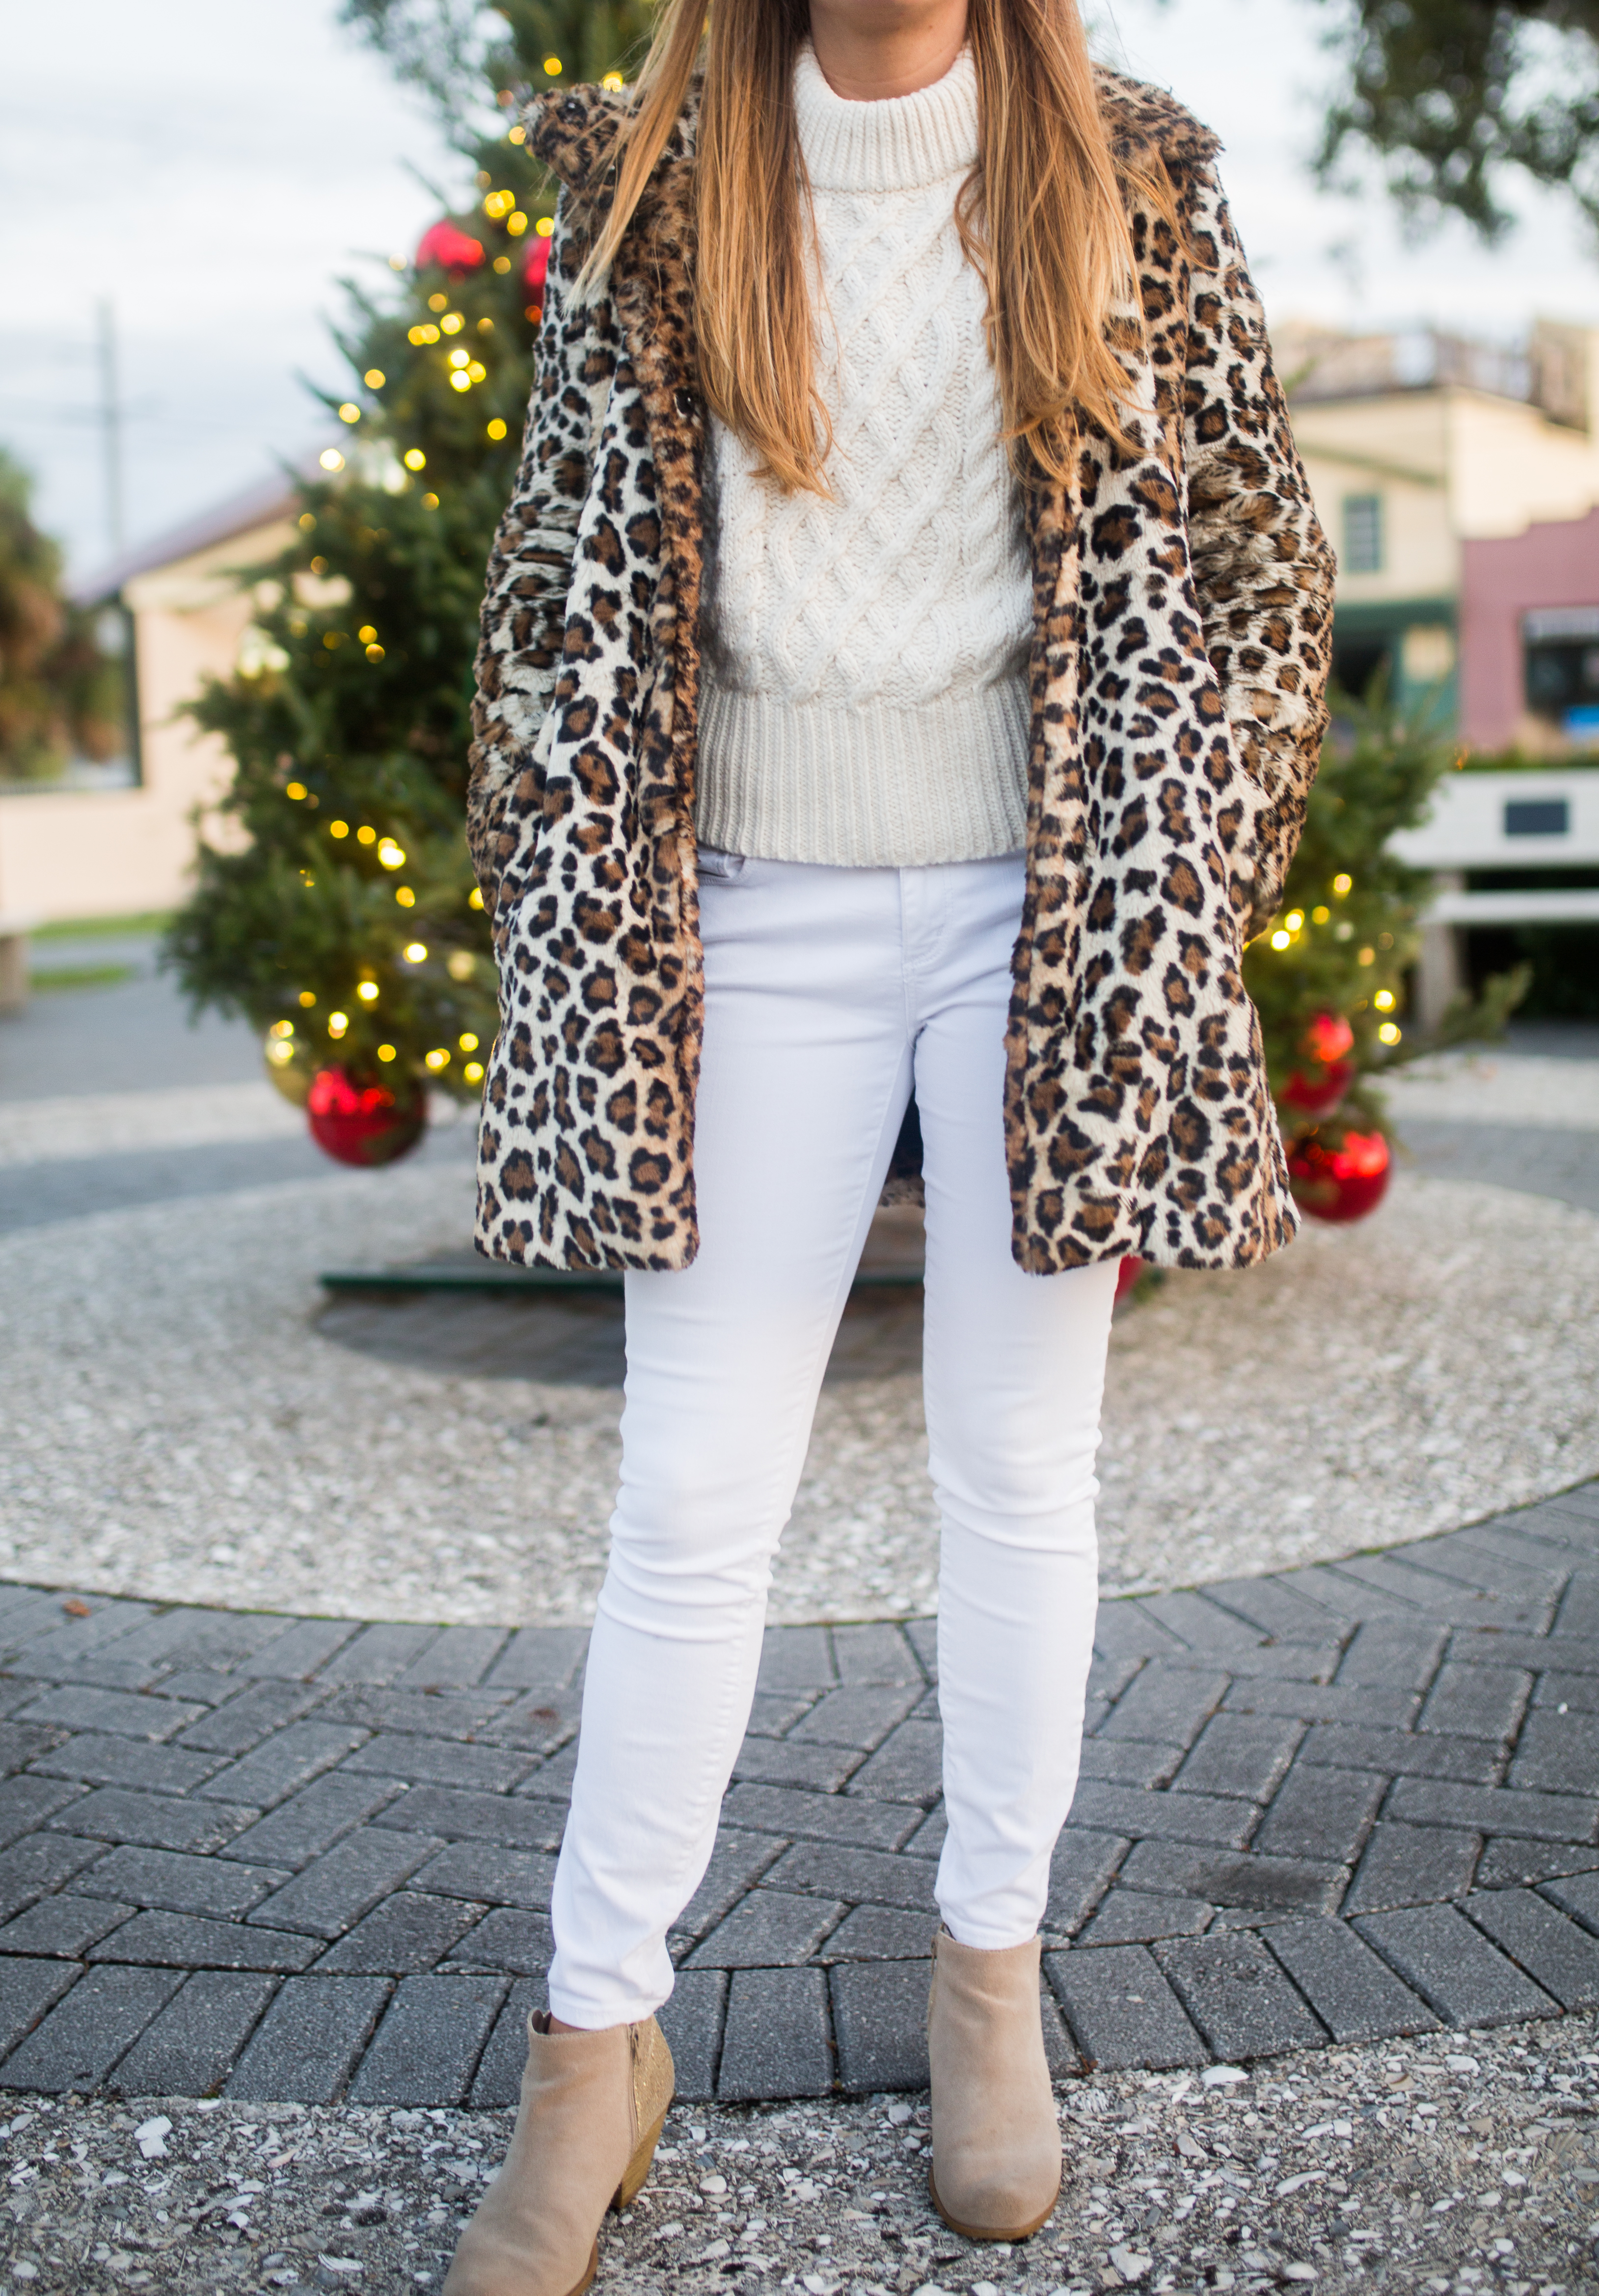 Faux-Fur Coat / How to Style a Leopard Coat / Sustainable Cable Knit Sweater / Ethical Sweater / White Skinny Jeans / Leopard Headband  - Sunshine Style